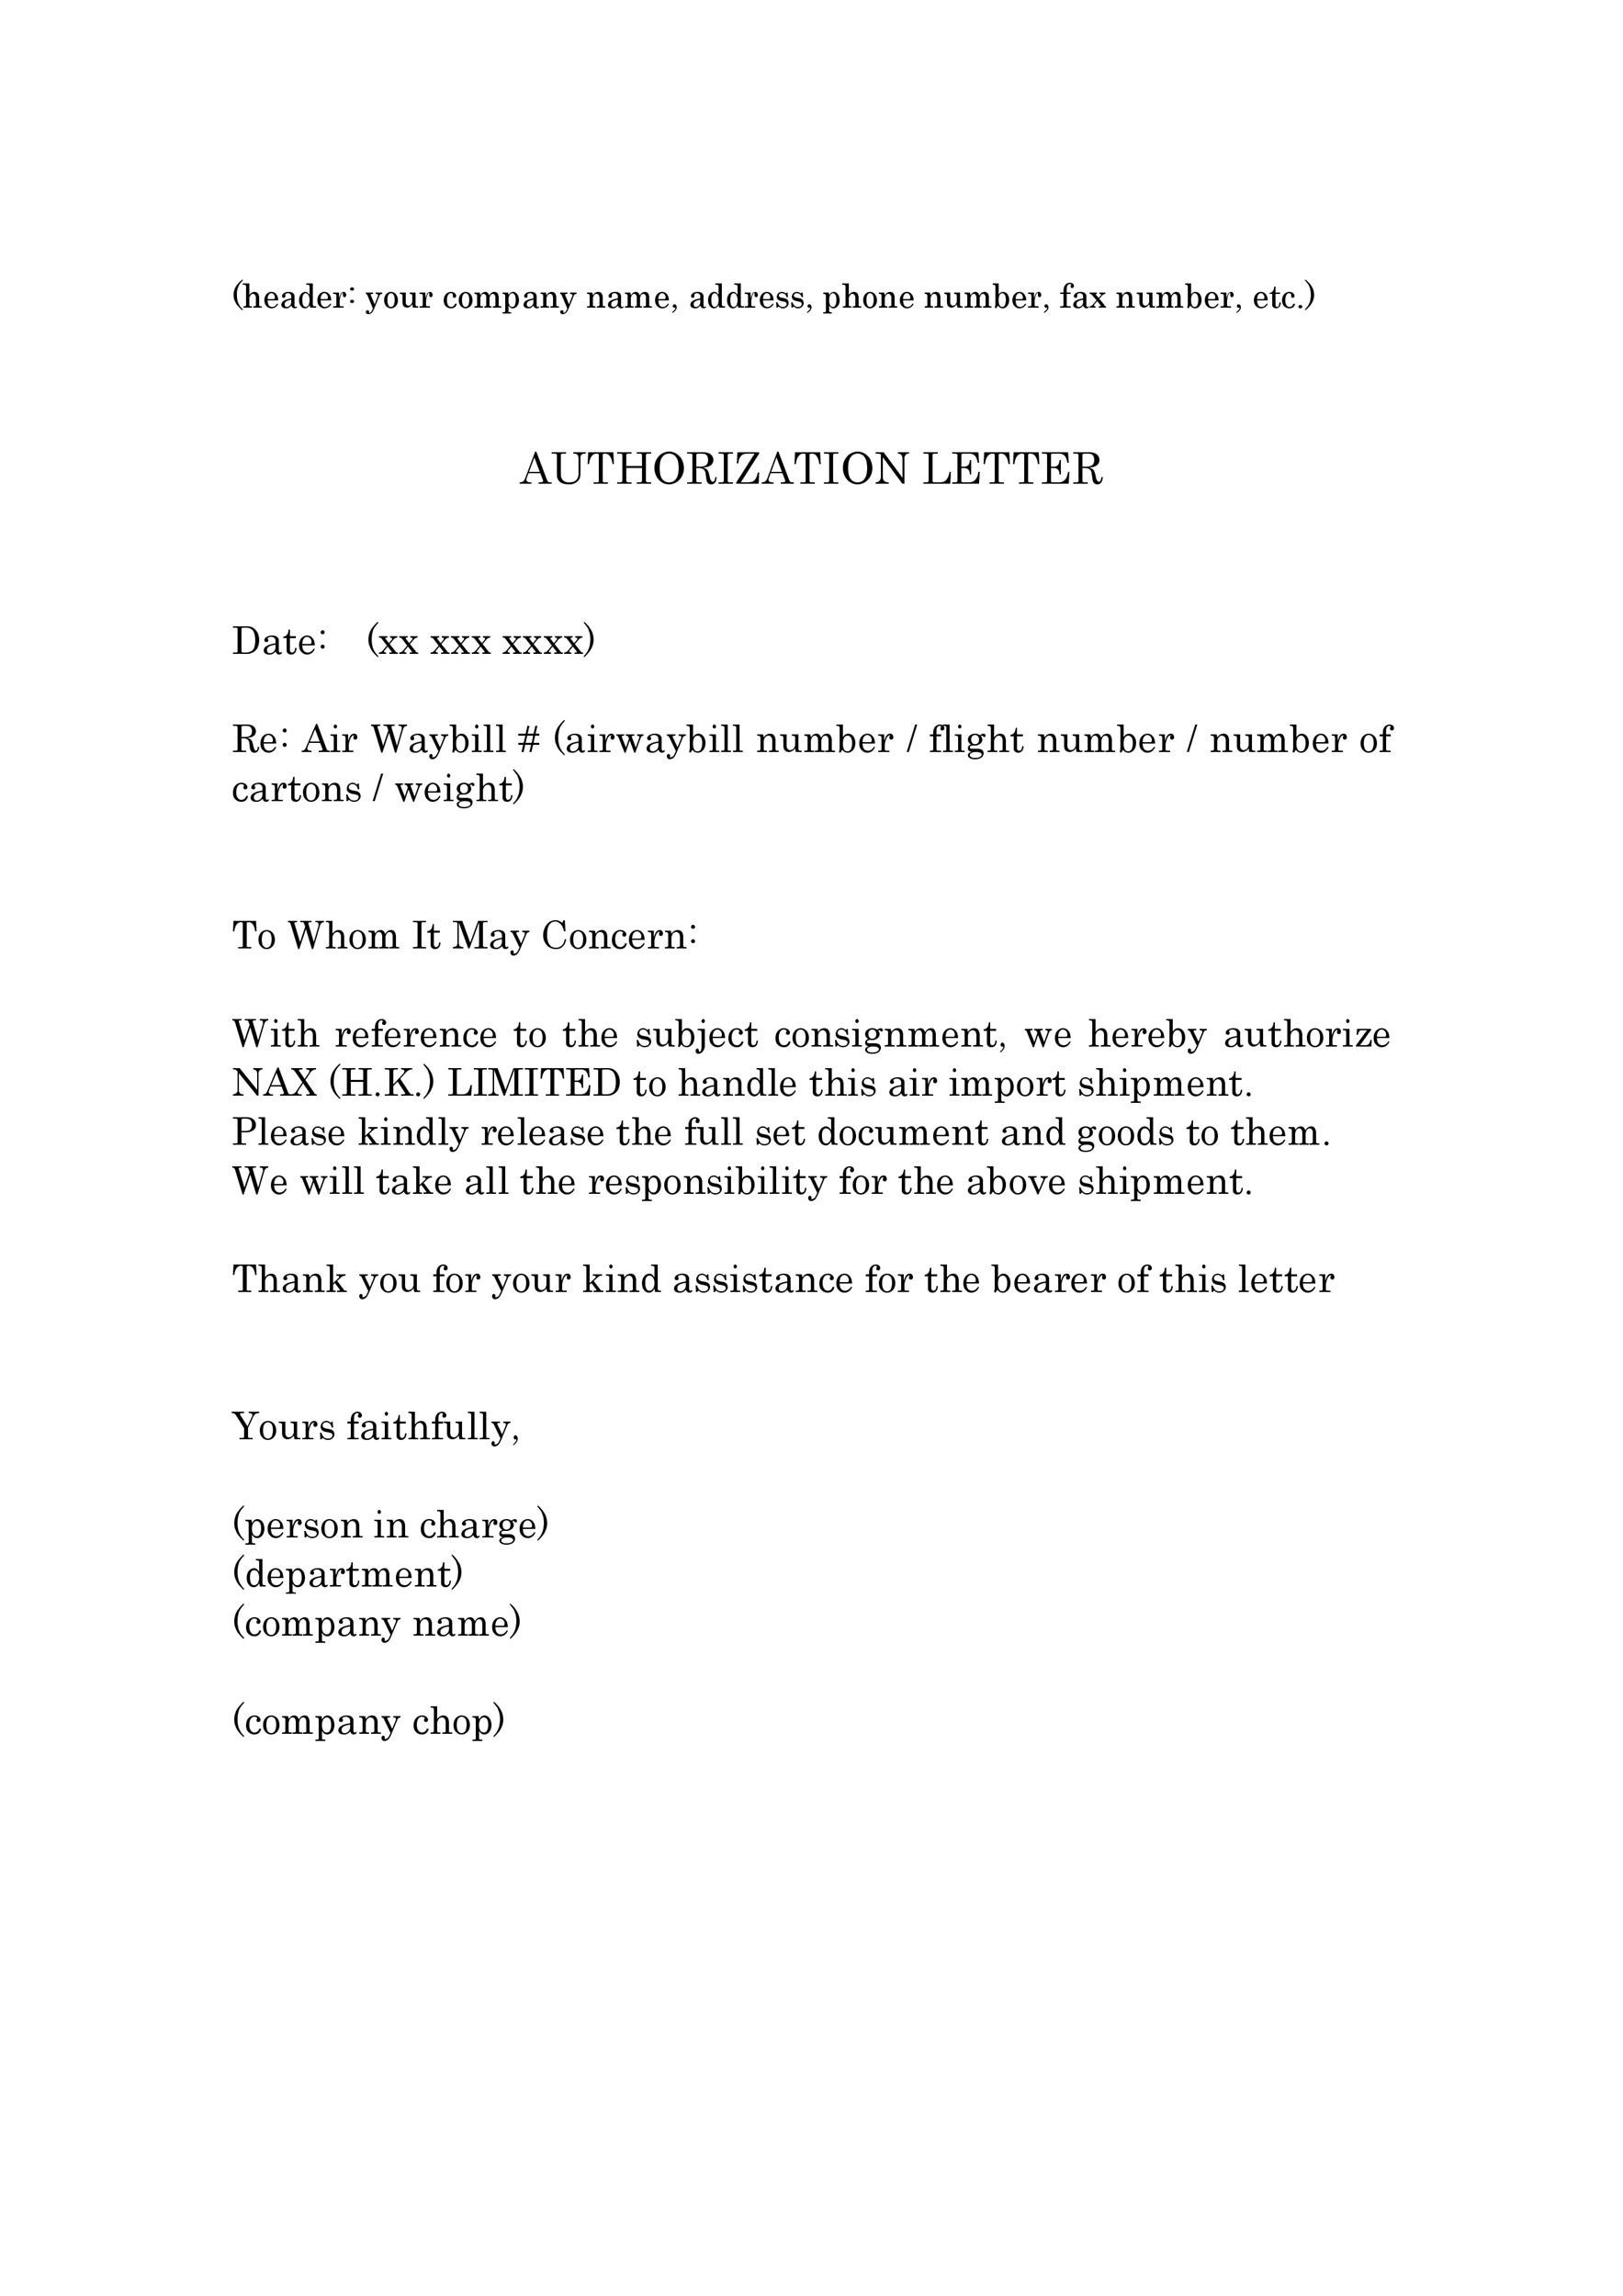 46 Authorization Letter Samples Amp Templates Template Lab